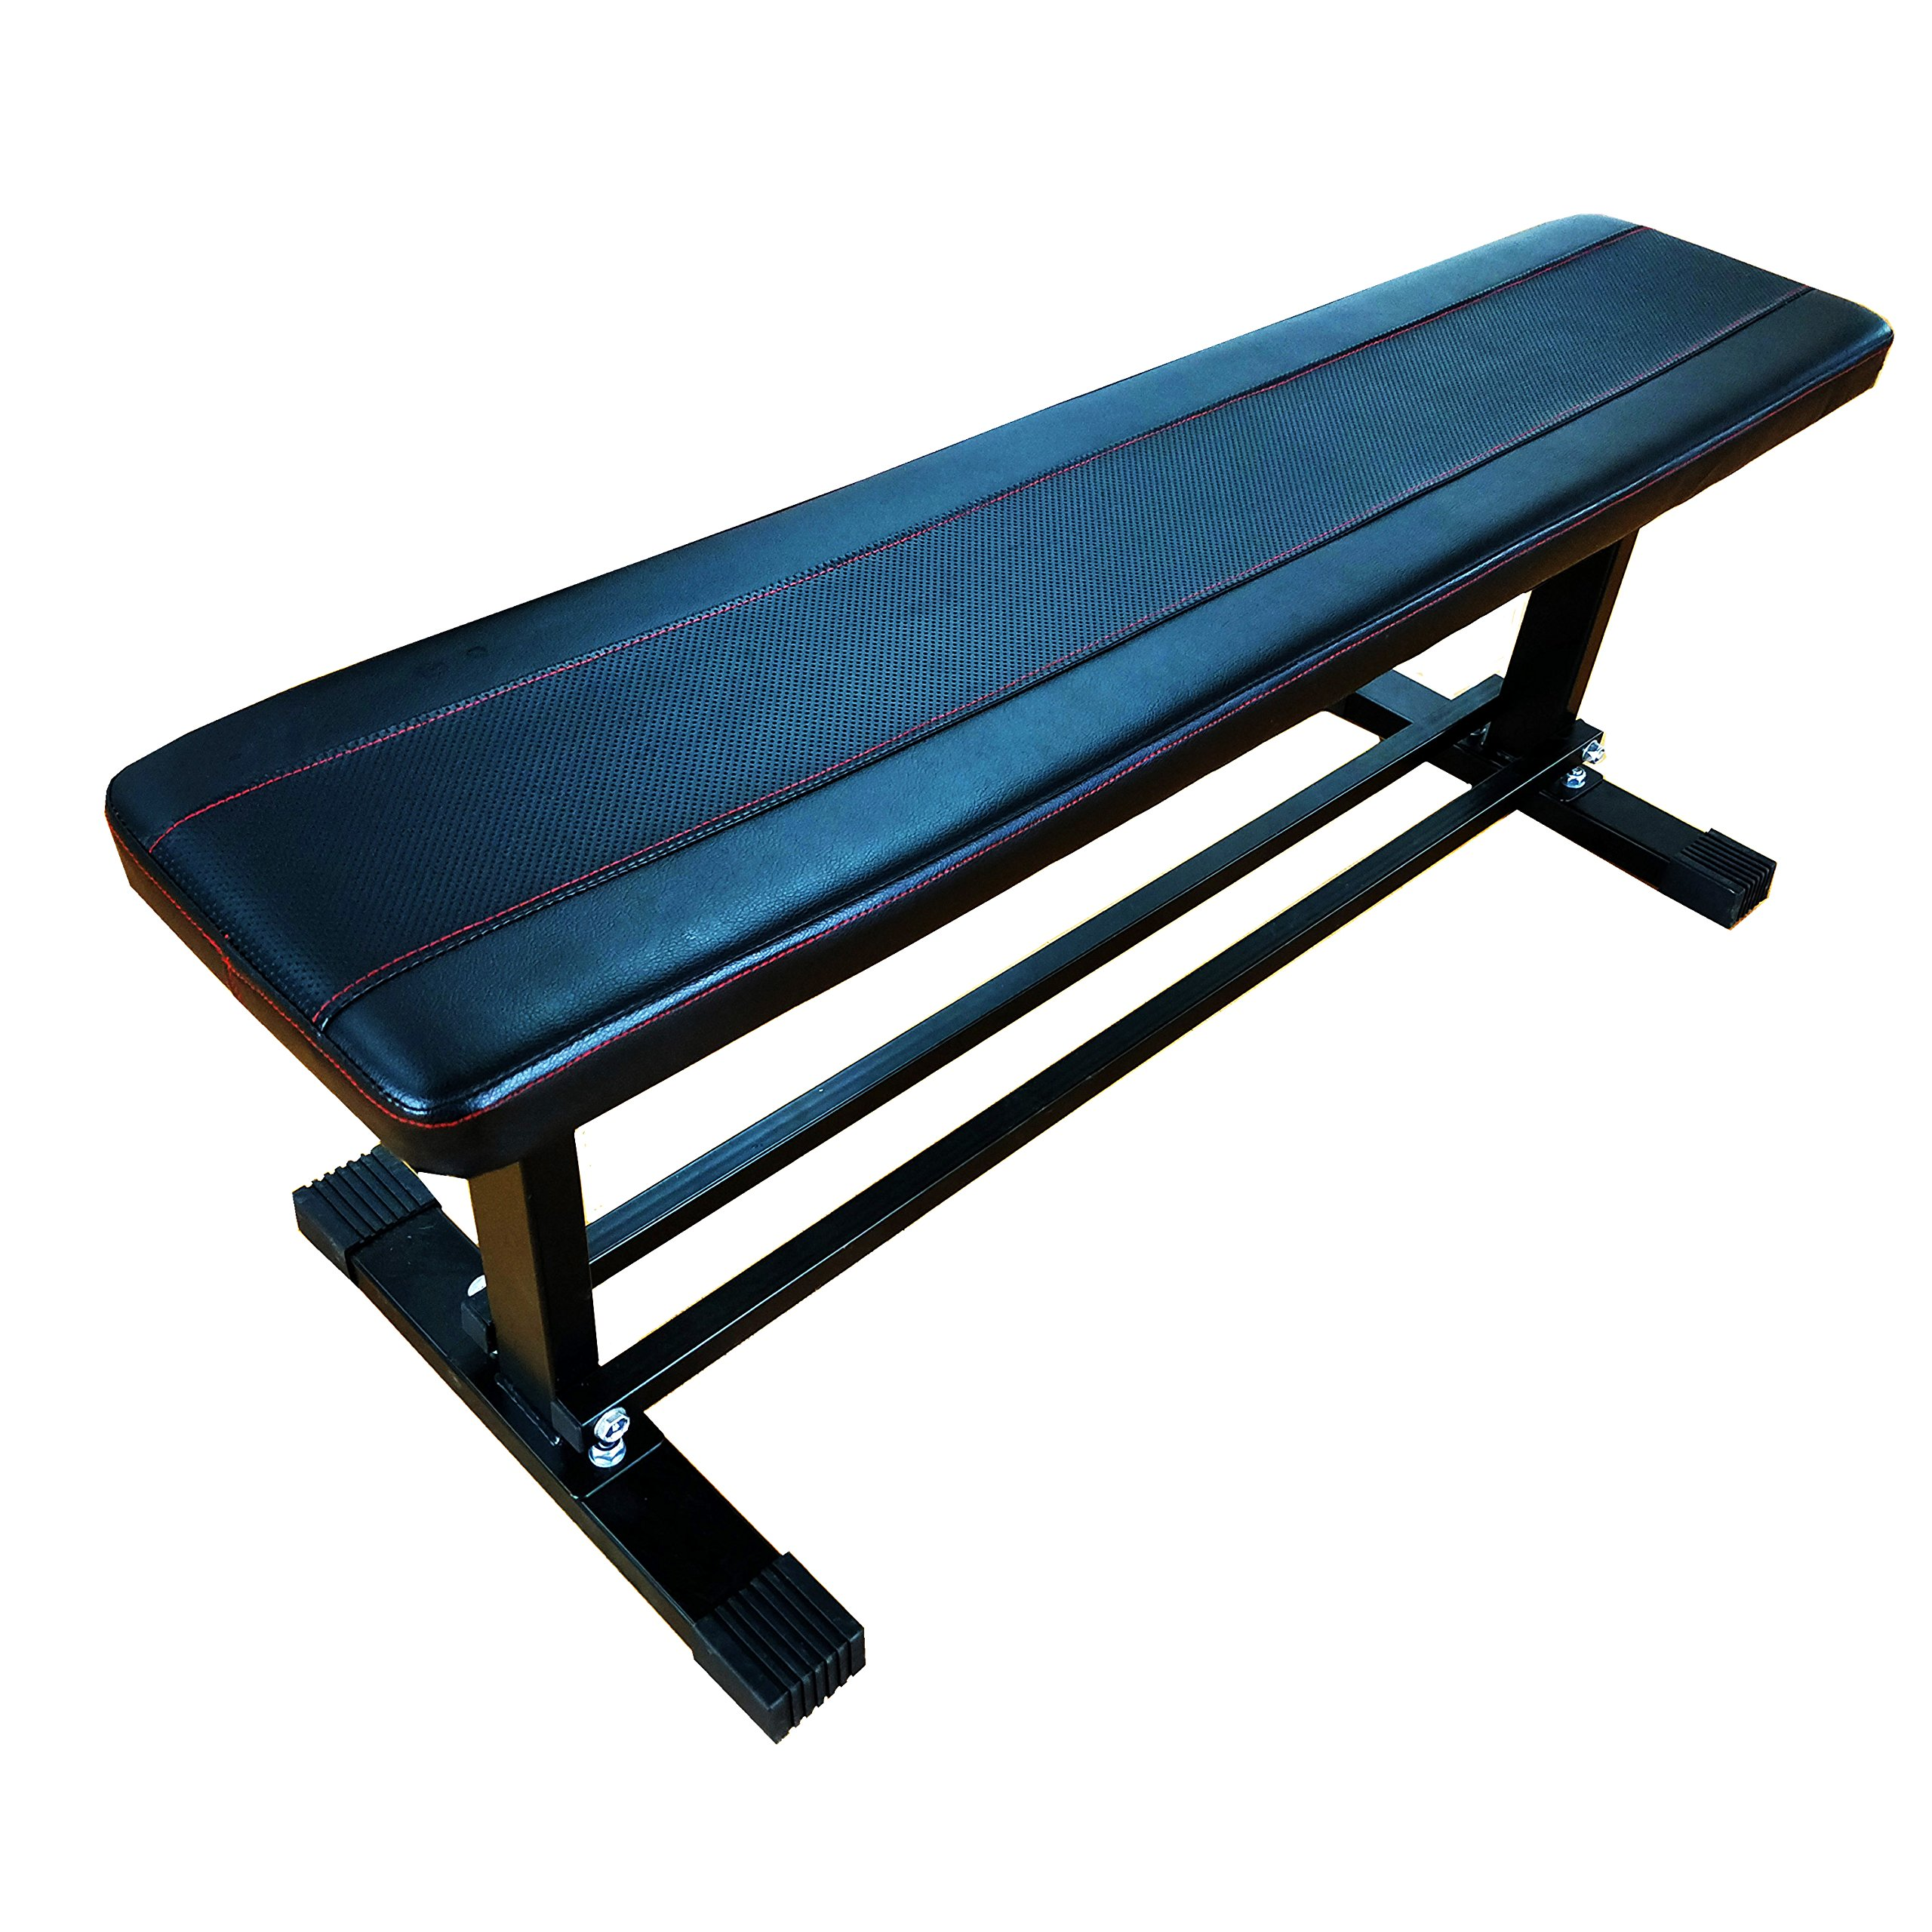 BalanceFrom Steel Frame Flat Weight Training Bench with Cross Bars, 1000-LBS Capacity